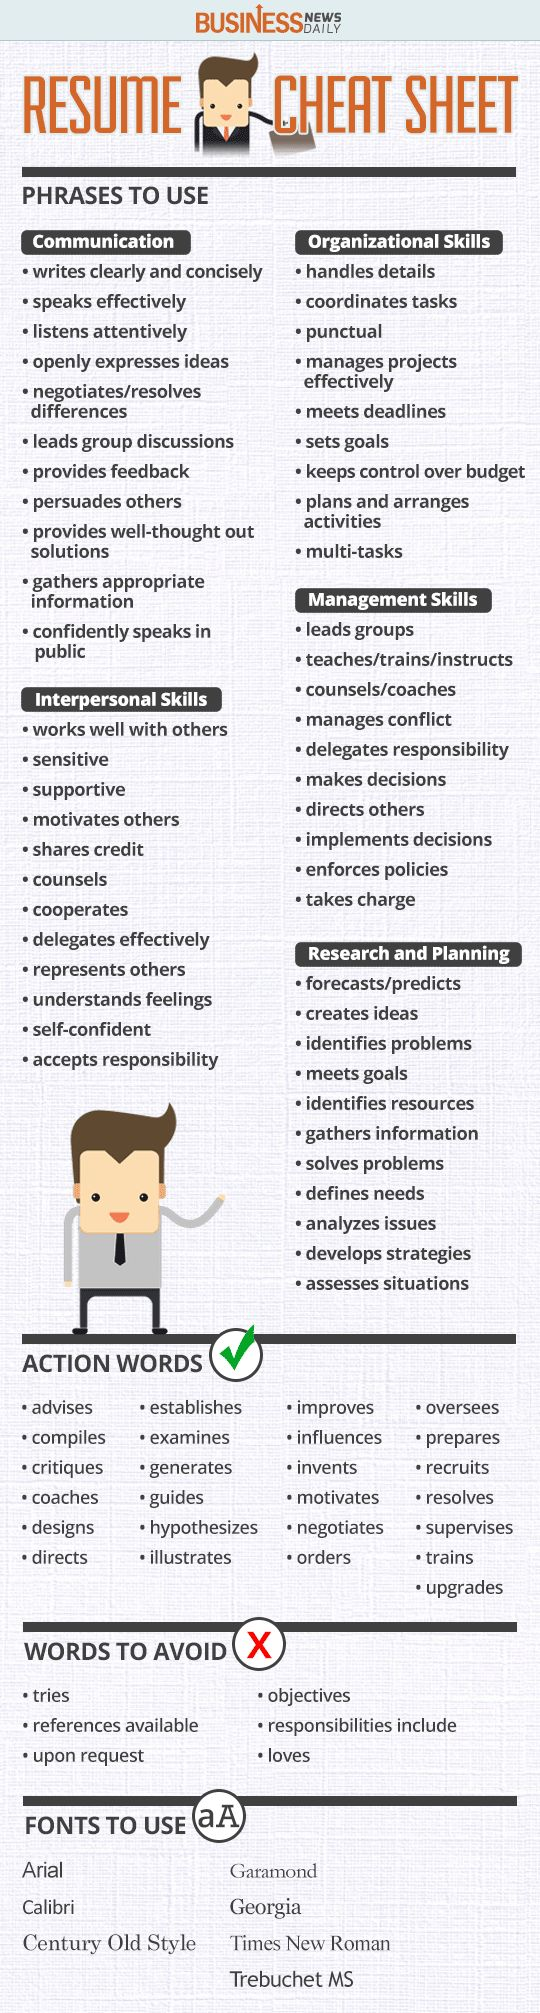 Opposenewapstandardsus  Seductive  Ideas About Resume On Pinterest  Cv Format Resume Cv And  With Interesting Resume Cheat Sheet Infographic Andrews Almost Done With A Complete Unit On Employment Which With Charming Updating Resume Also Bus Driver Resume In Addition Early Childhood Education Resume And Cna Job Description Resume As Well As How To Present A Resume Additionally Problem Solving Skills Resume From Pinterestcom With Opposenewapstandardsus  Interesting  Ideas About Resume On Pinterest  Cv Format Resume Cv And  With Charming Resume Cheat Sheet Infographic Andrews Almost Done With A Complete Unit On Employment Which And Seductive Updating Resume Also Bus Driver Resume In Addition Early Childhood Education Resume From Pinterestcom